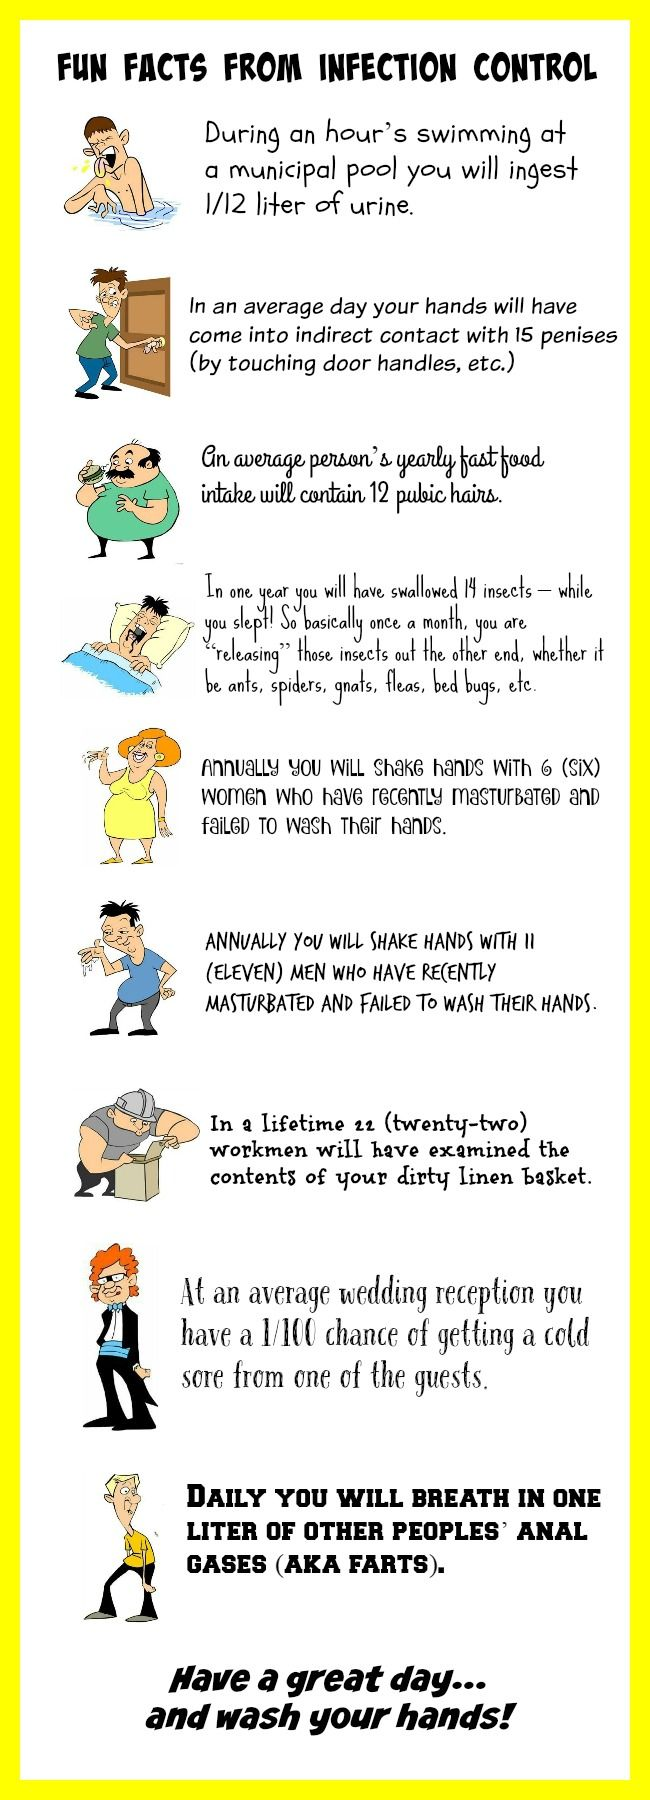 Fun Facts from Infection Control